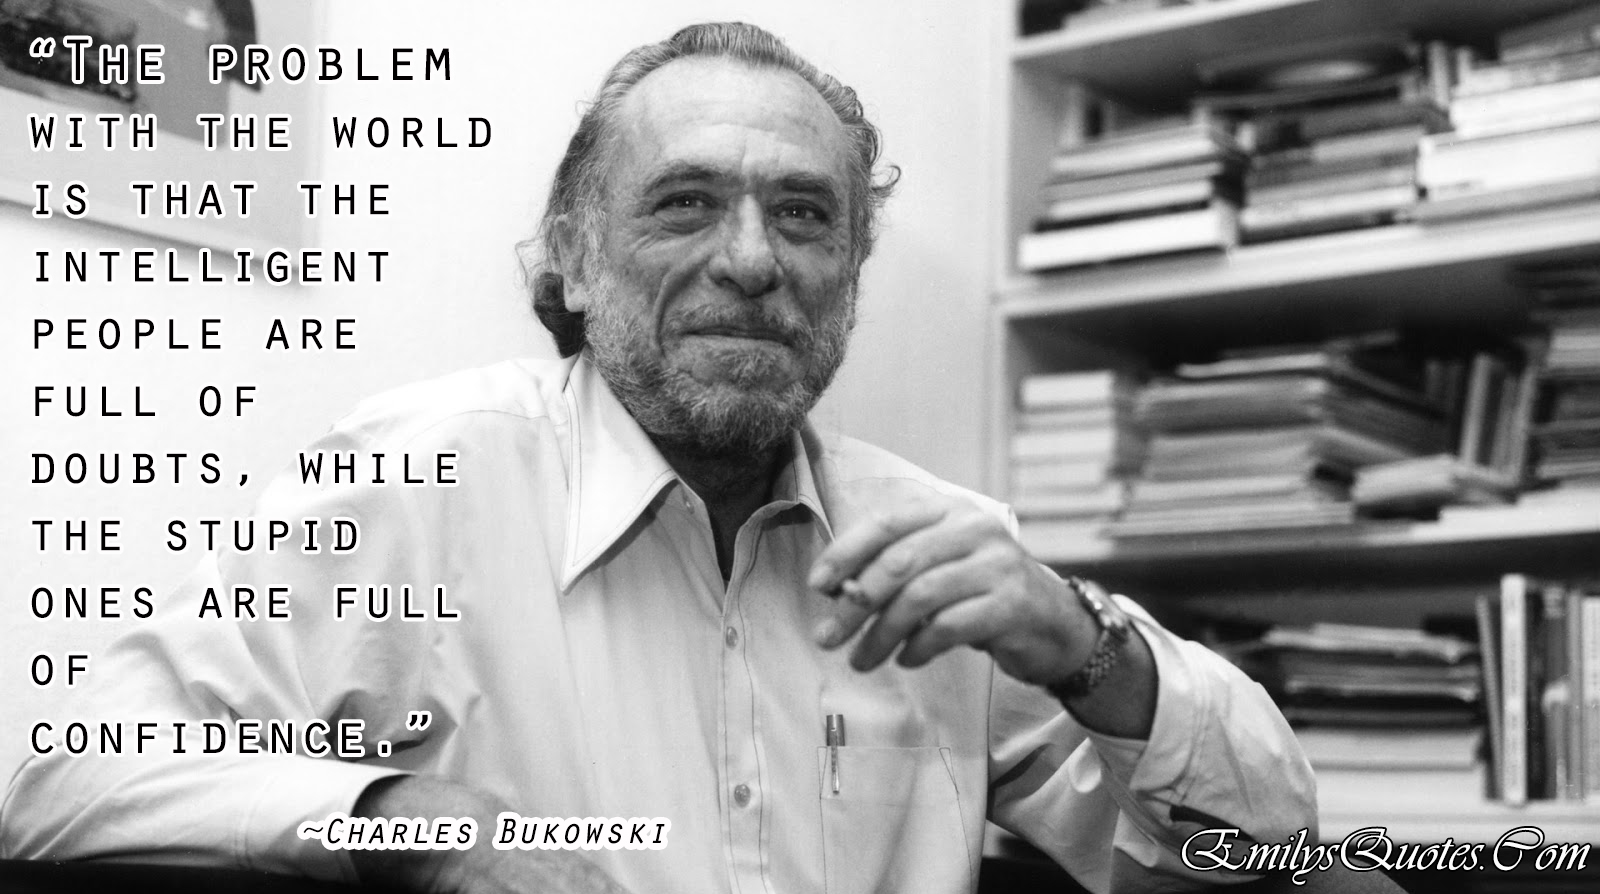 EmilysQuotes.Com - problem, world, Intelligence, funny, people, Charles Bukowski